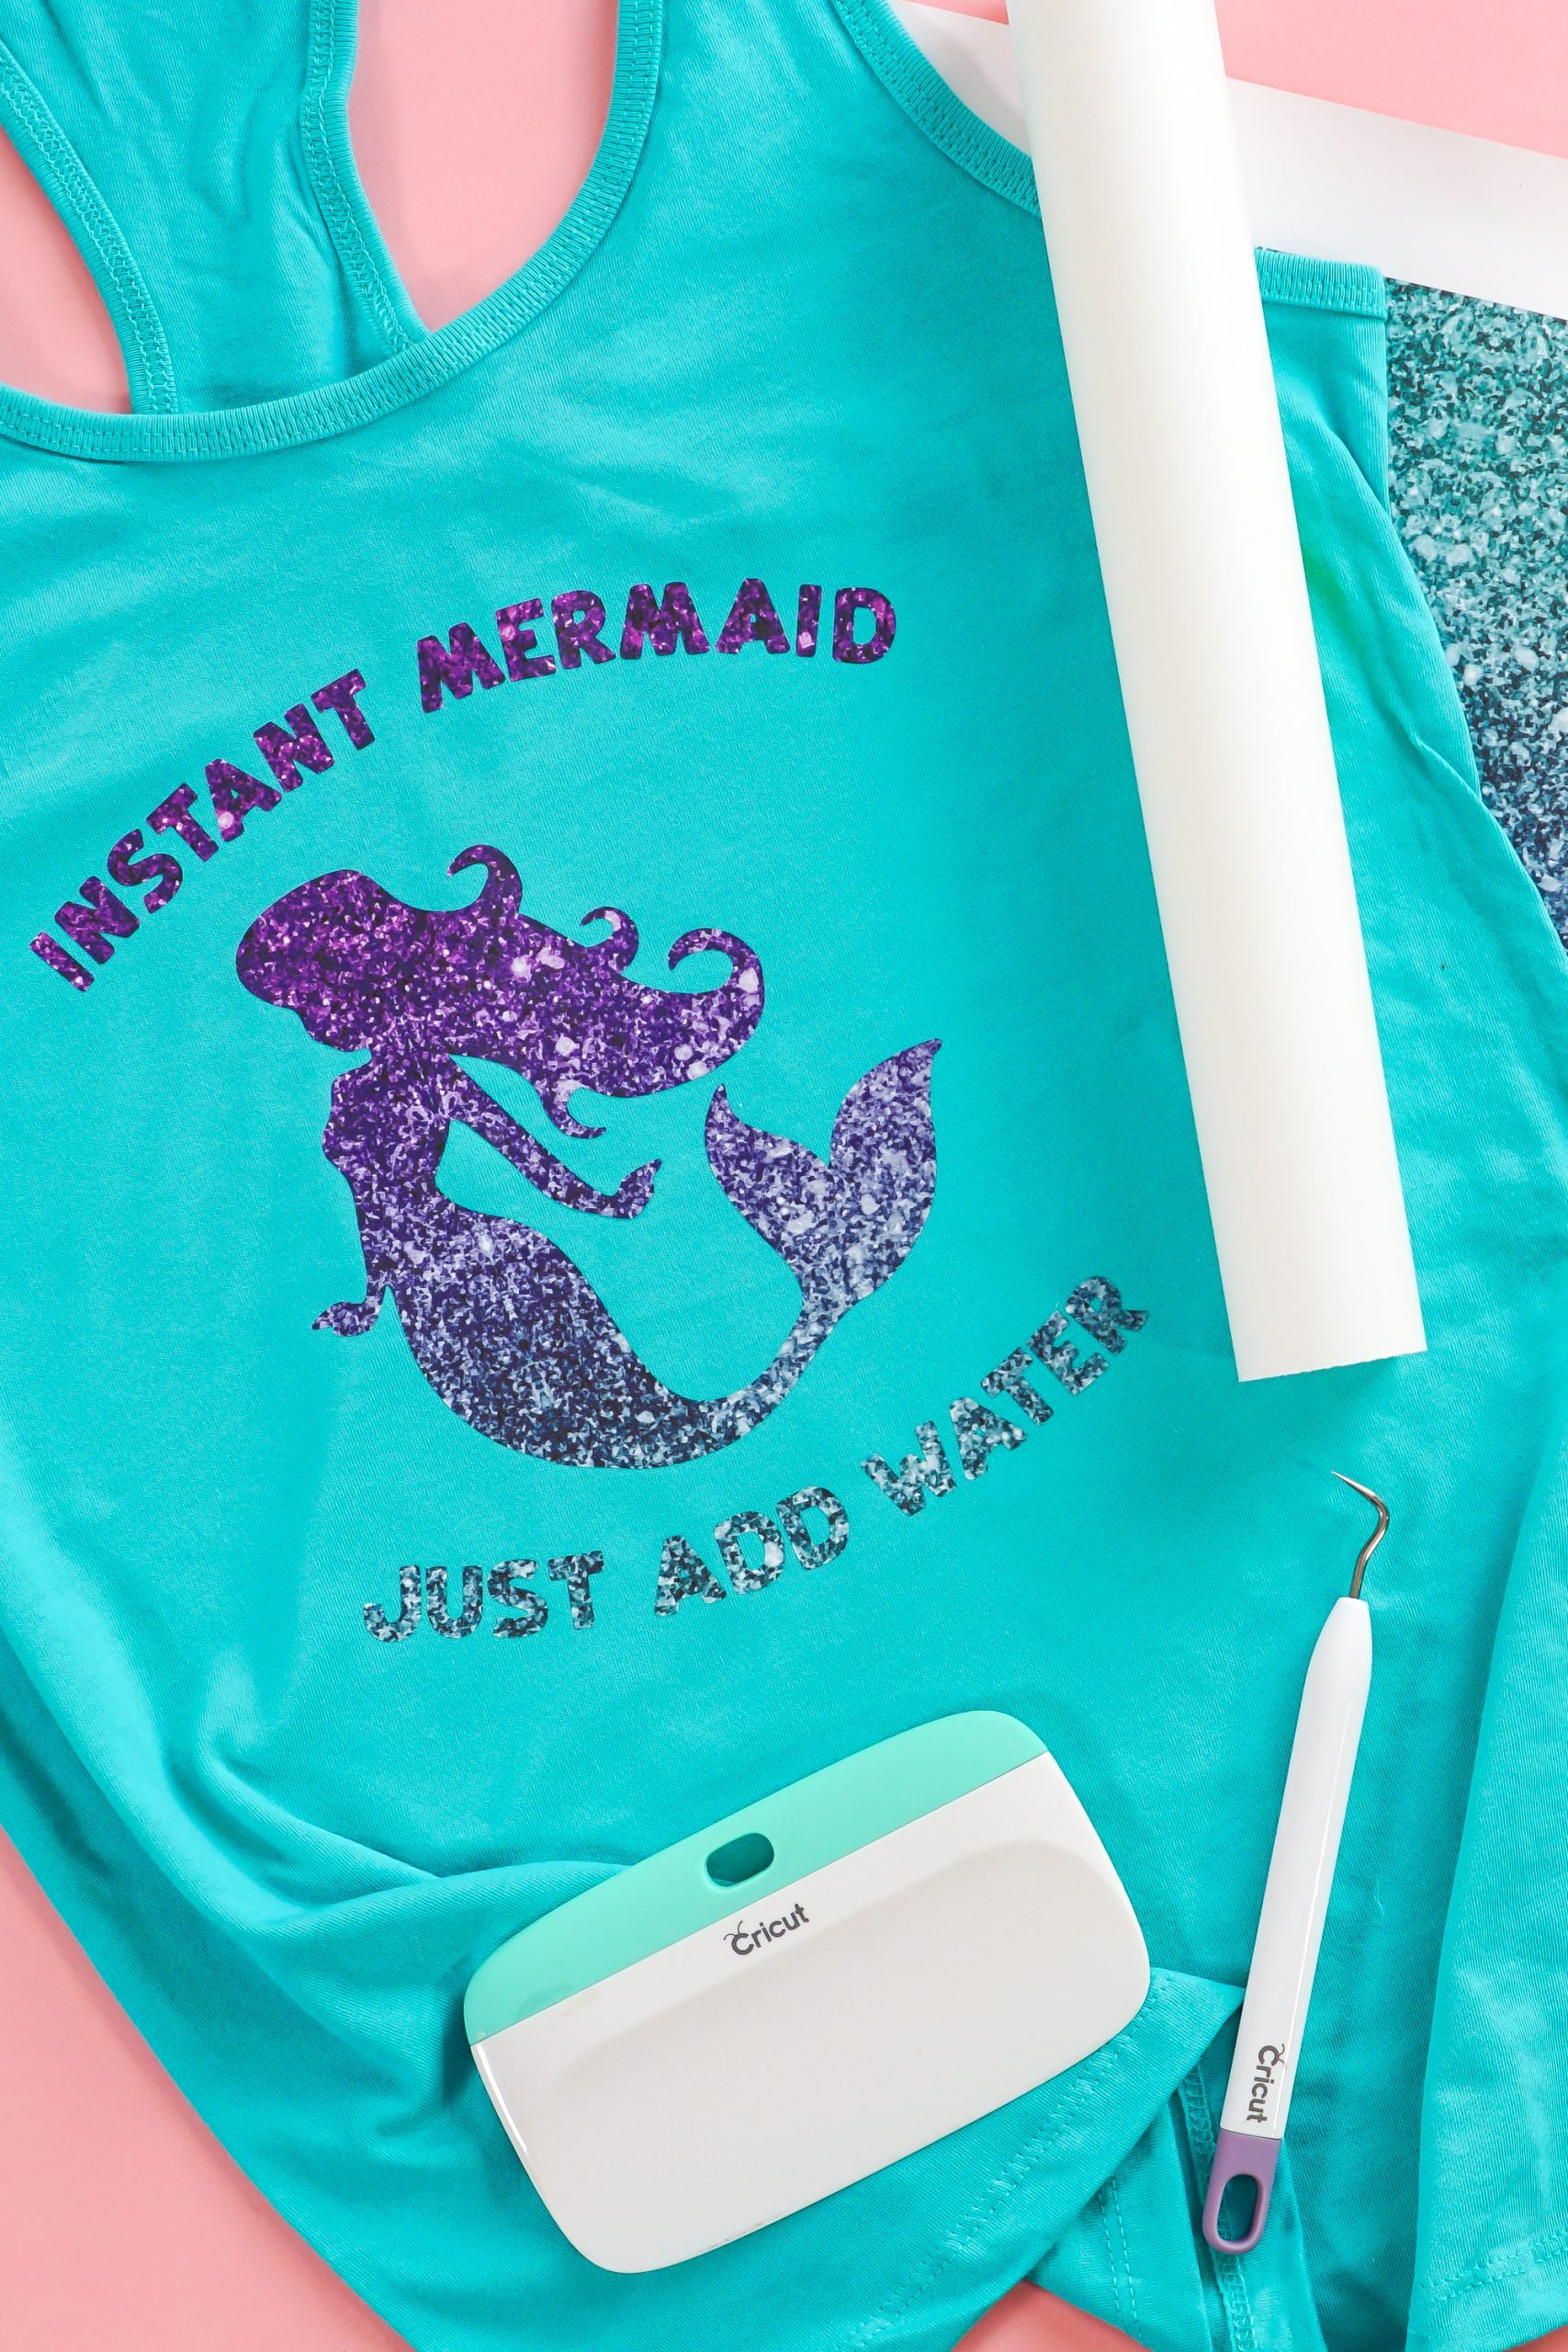 Final Instant Mermaid tank top